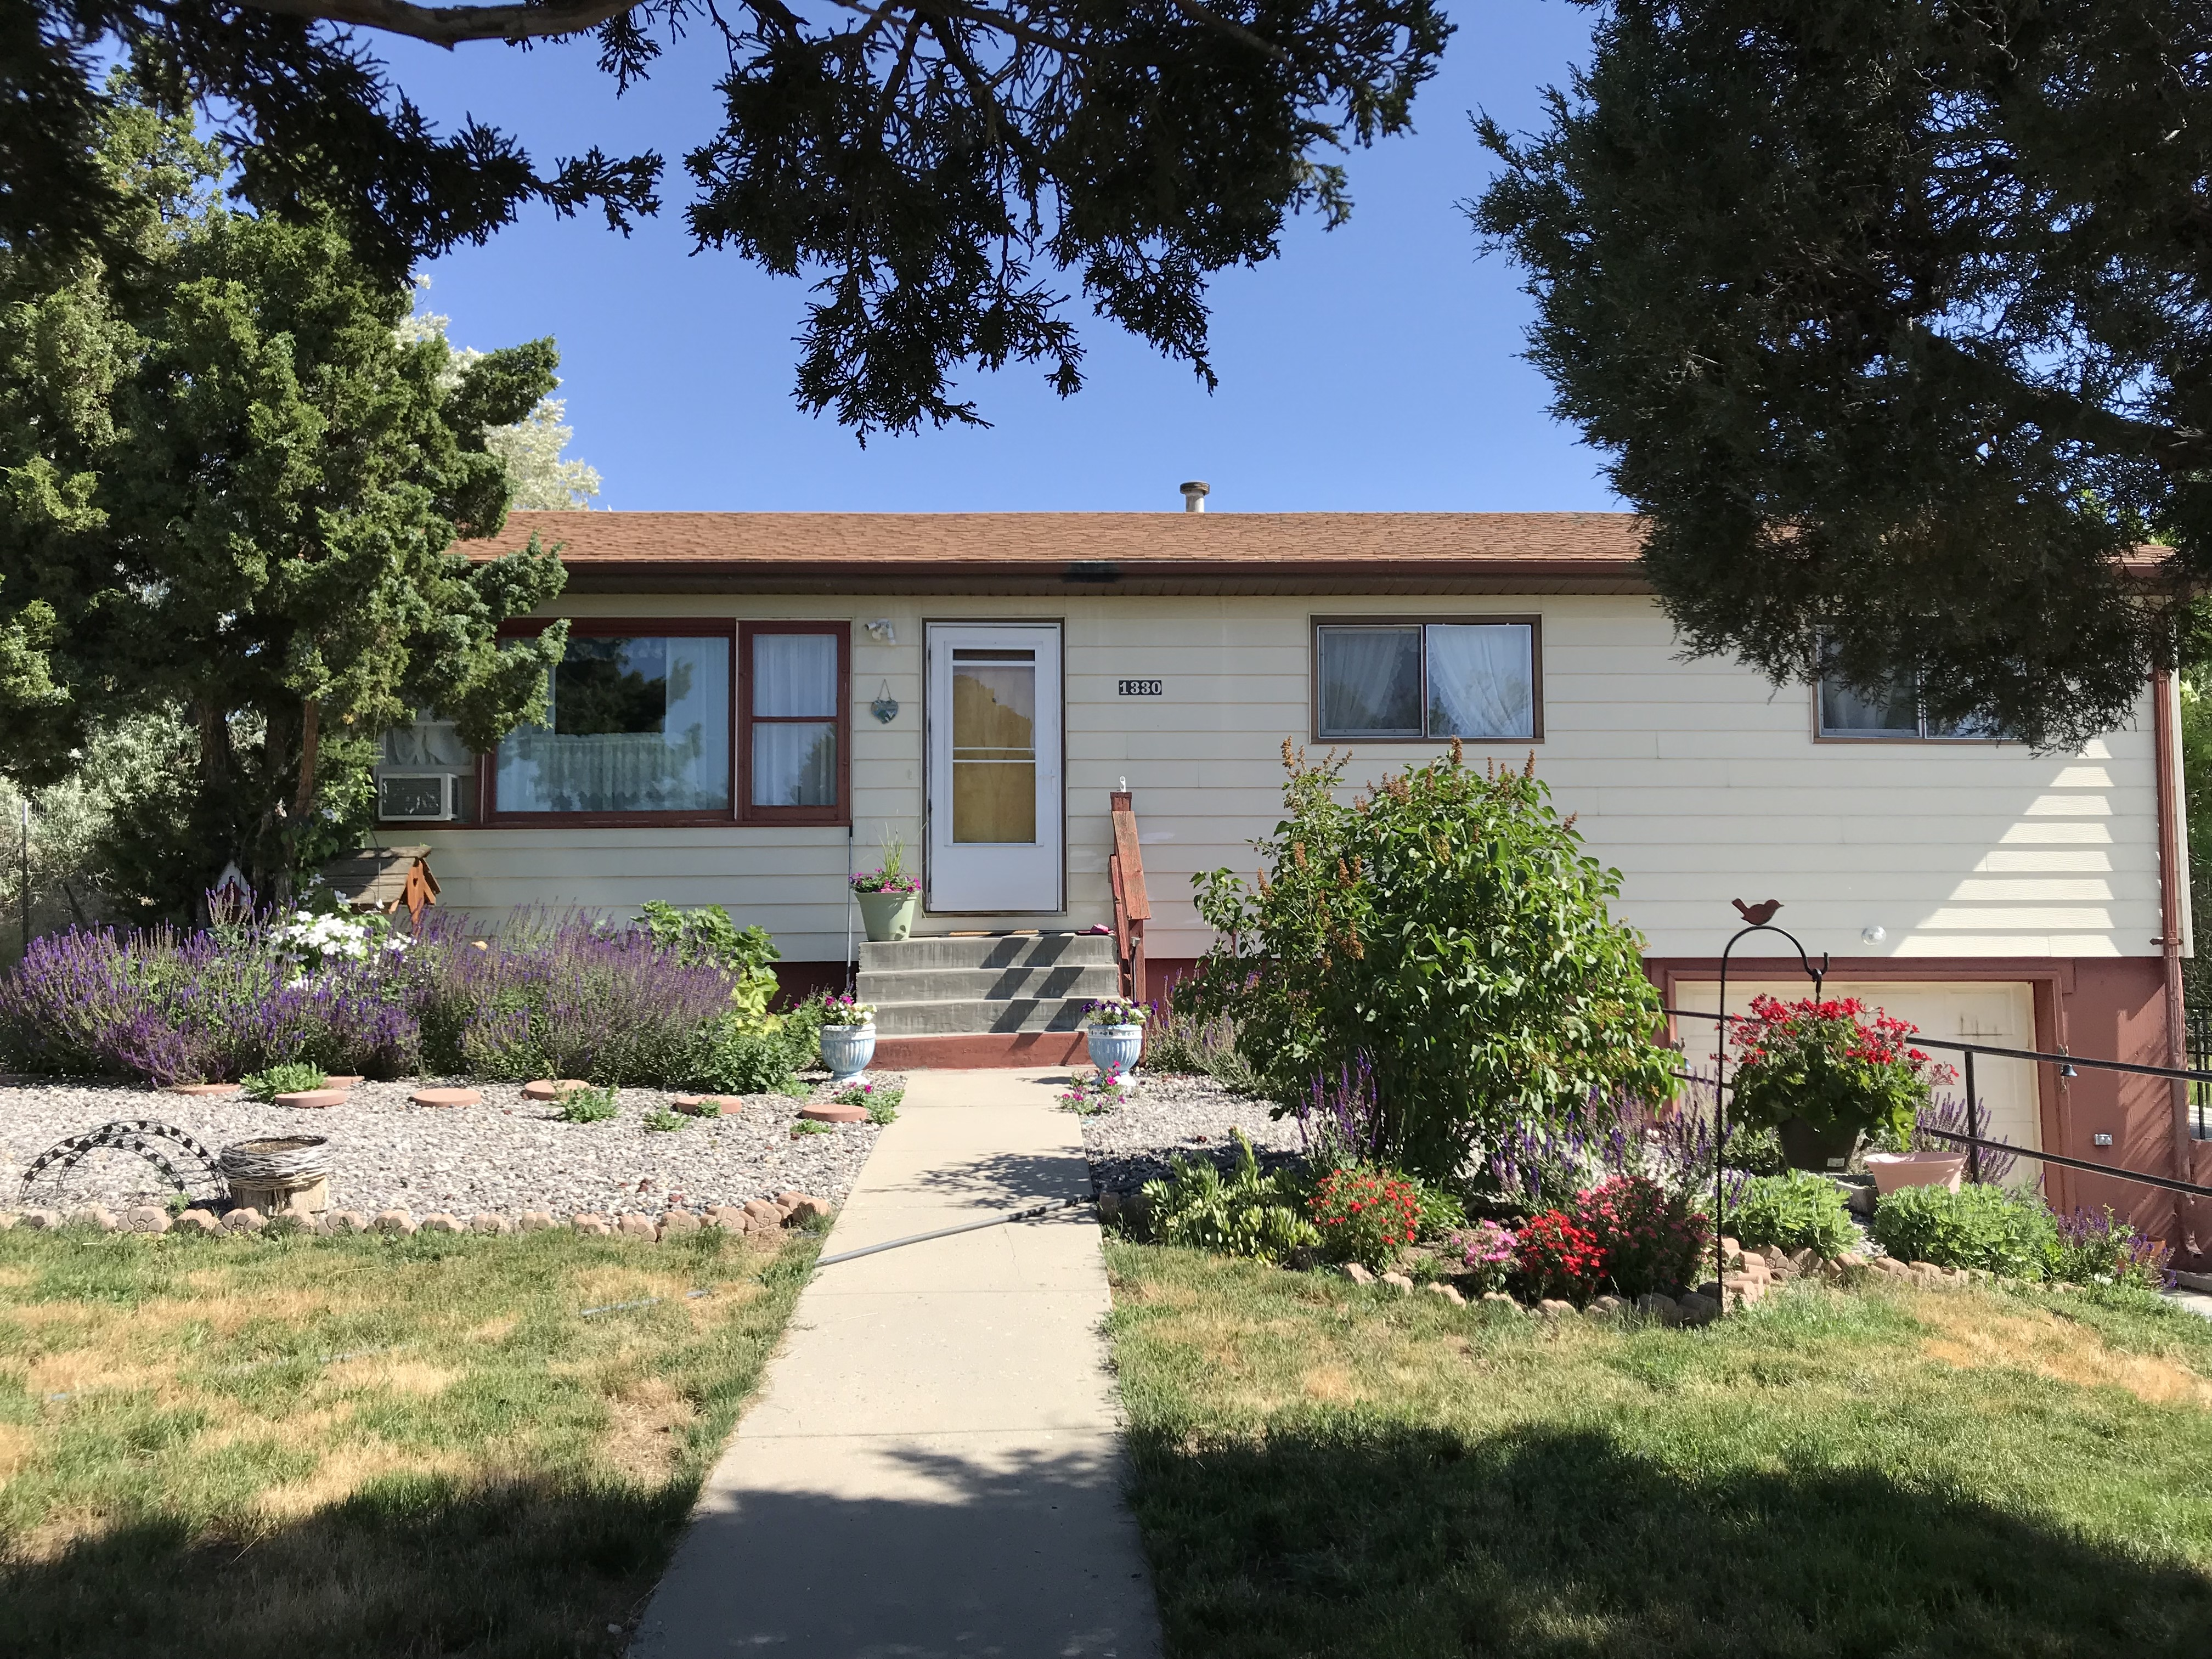 1330 Arapahoe Home For Sale In Thermopolis Wyoming